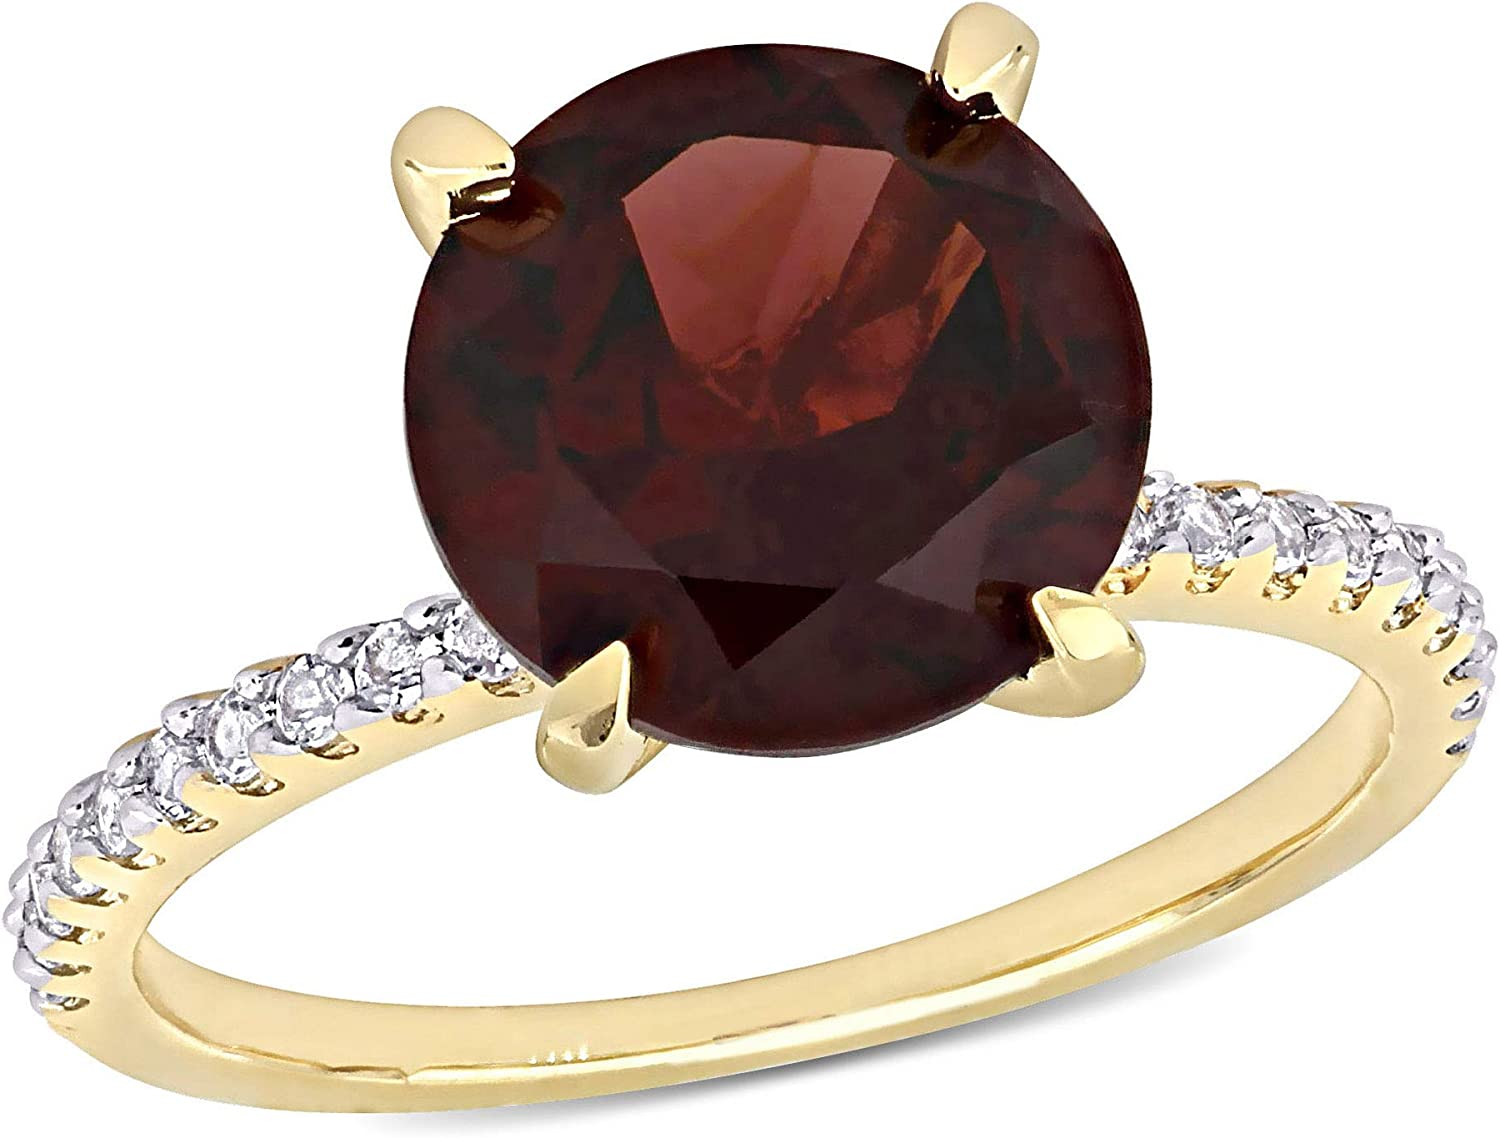 Abbie+Cleo Womens Round Cut Gemstone F Choice Ring 4-Prong Elegant in Solitarie